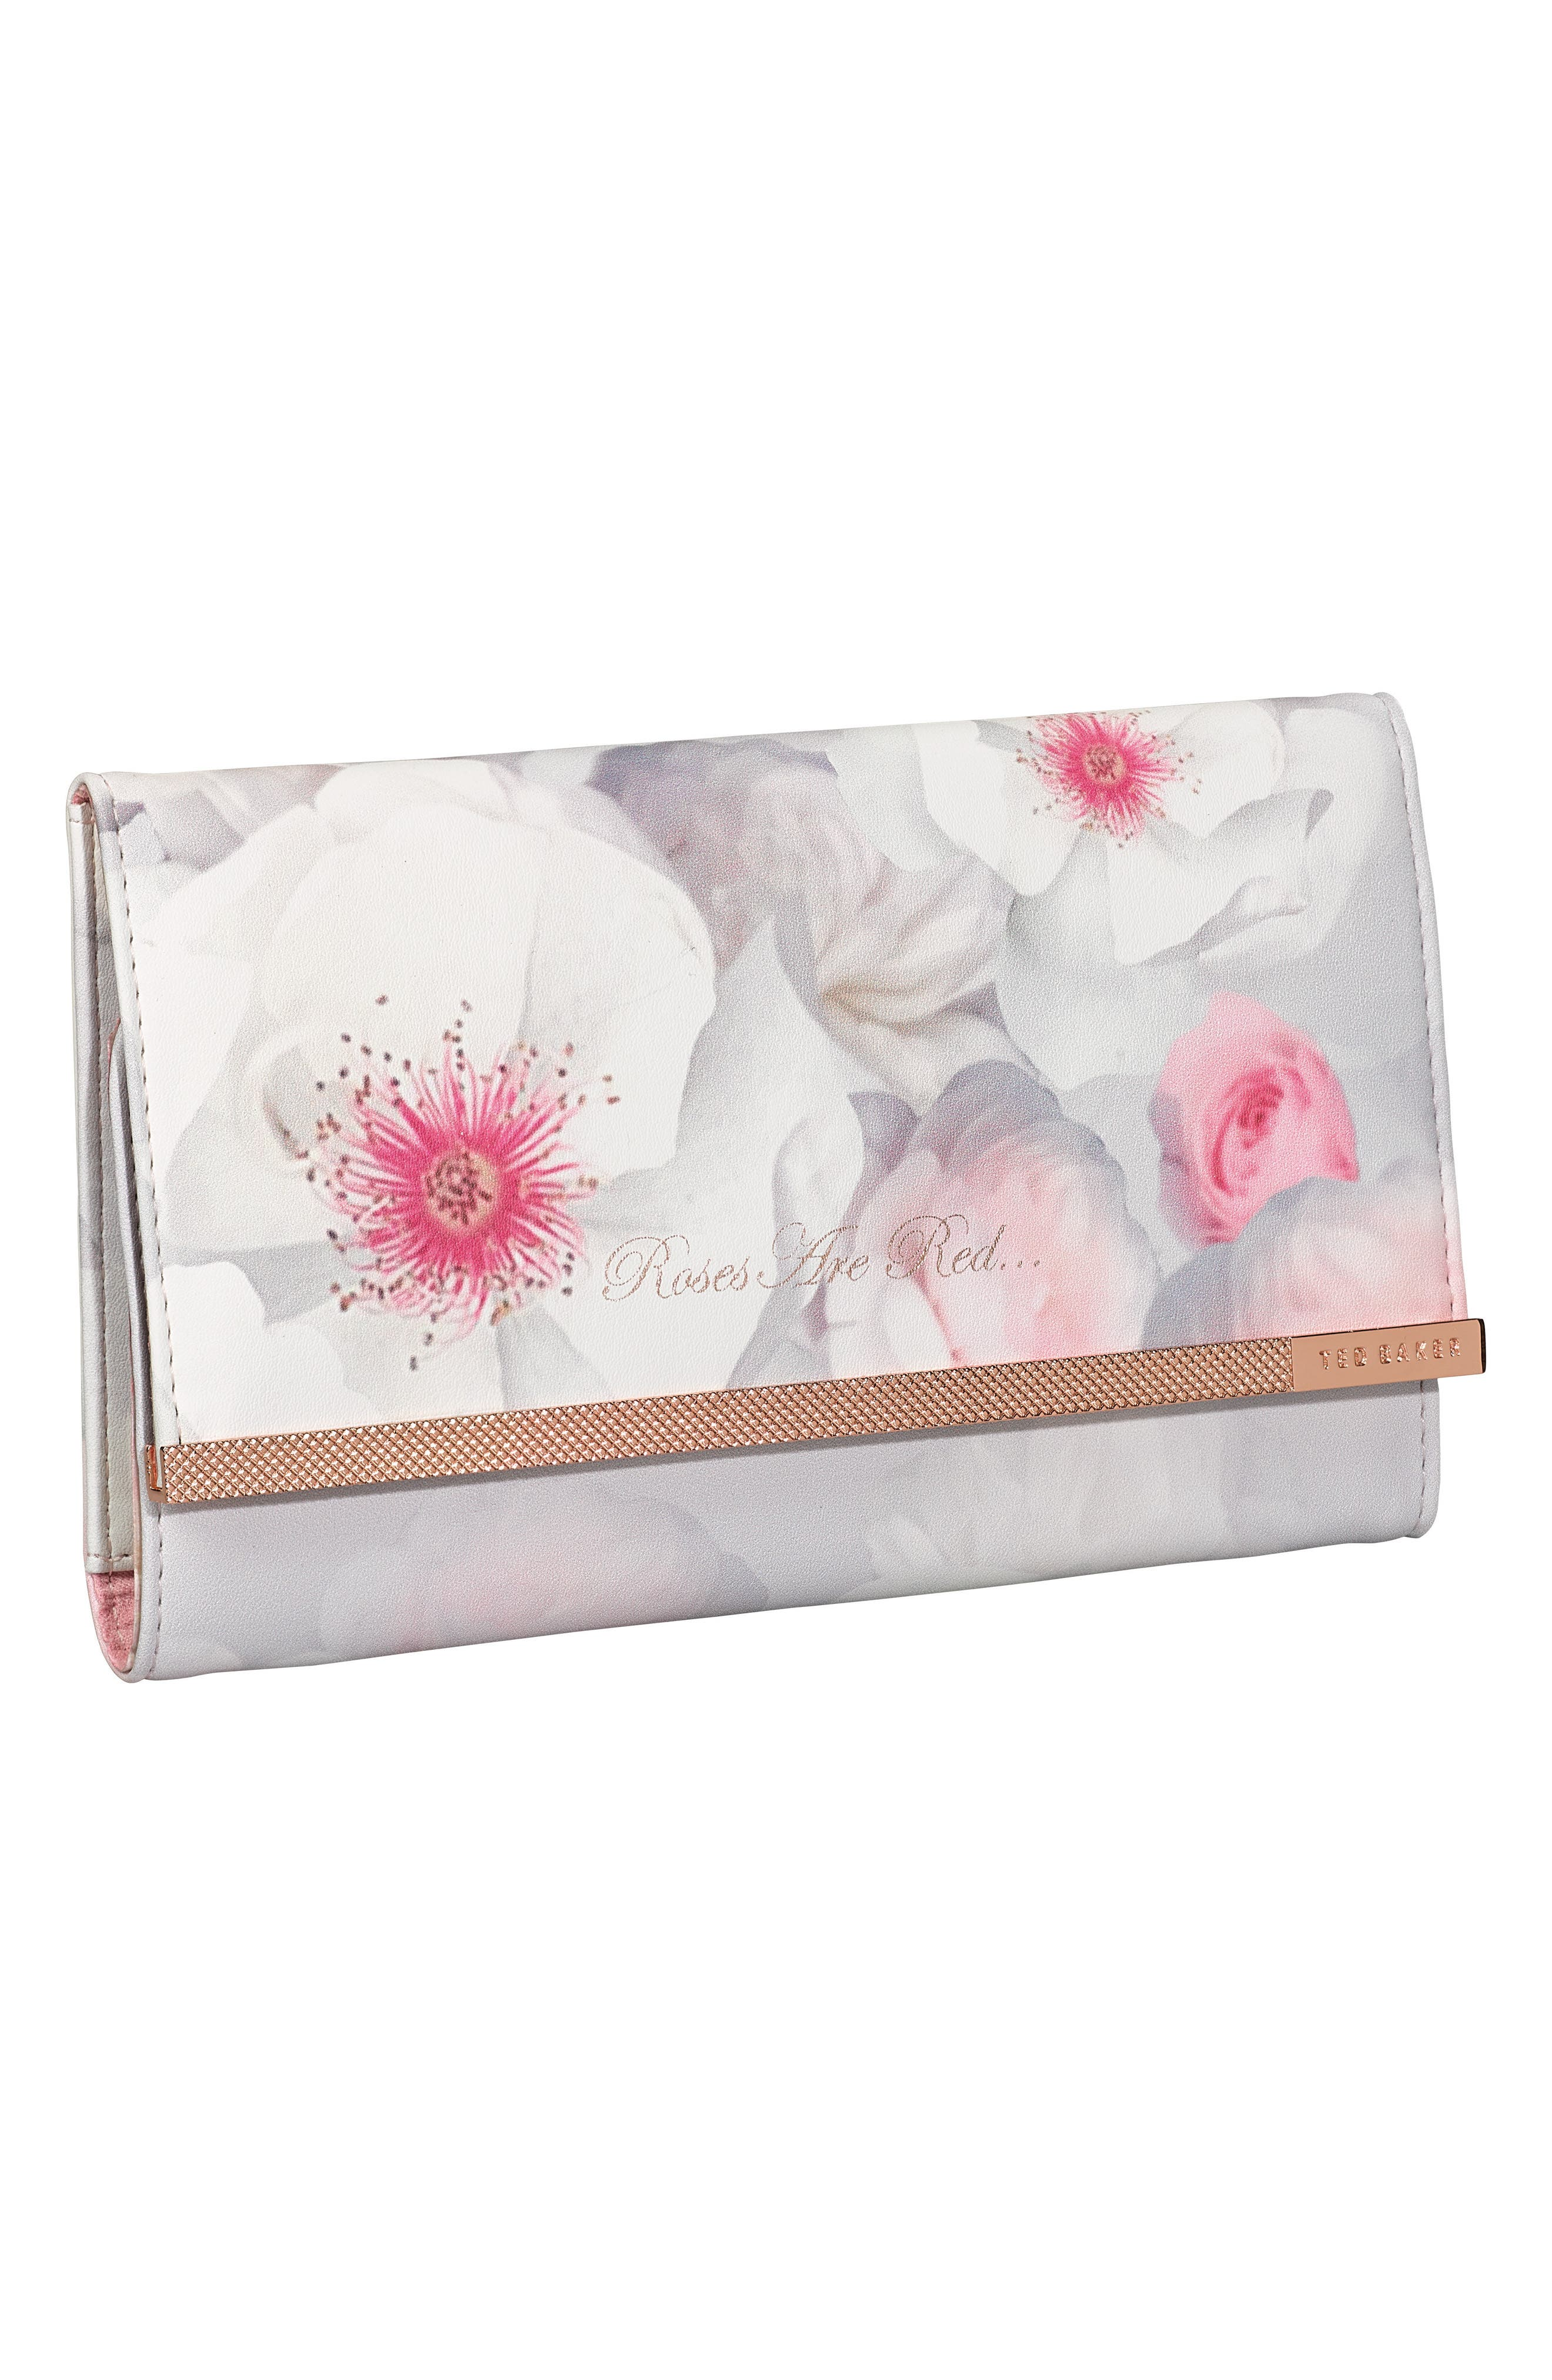 TED BAKER LONDON Faux Leather Jewelry Roll